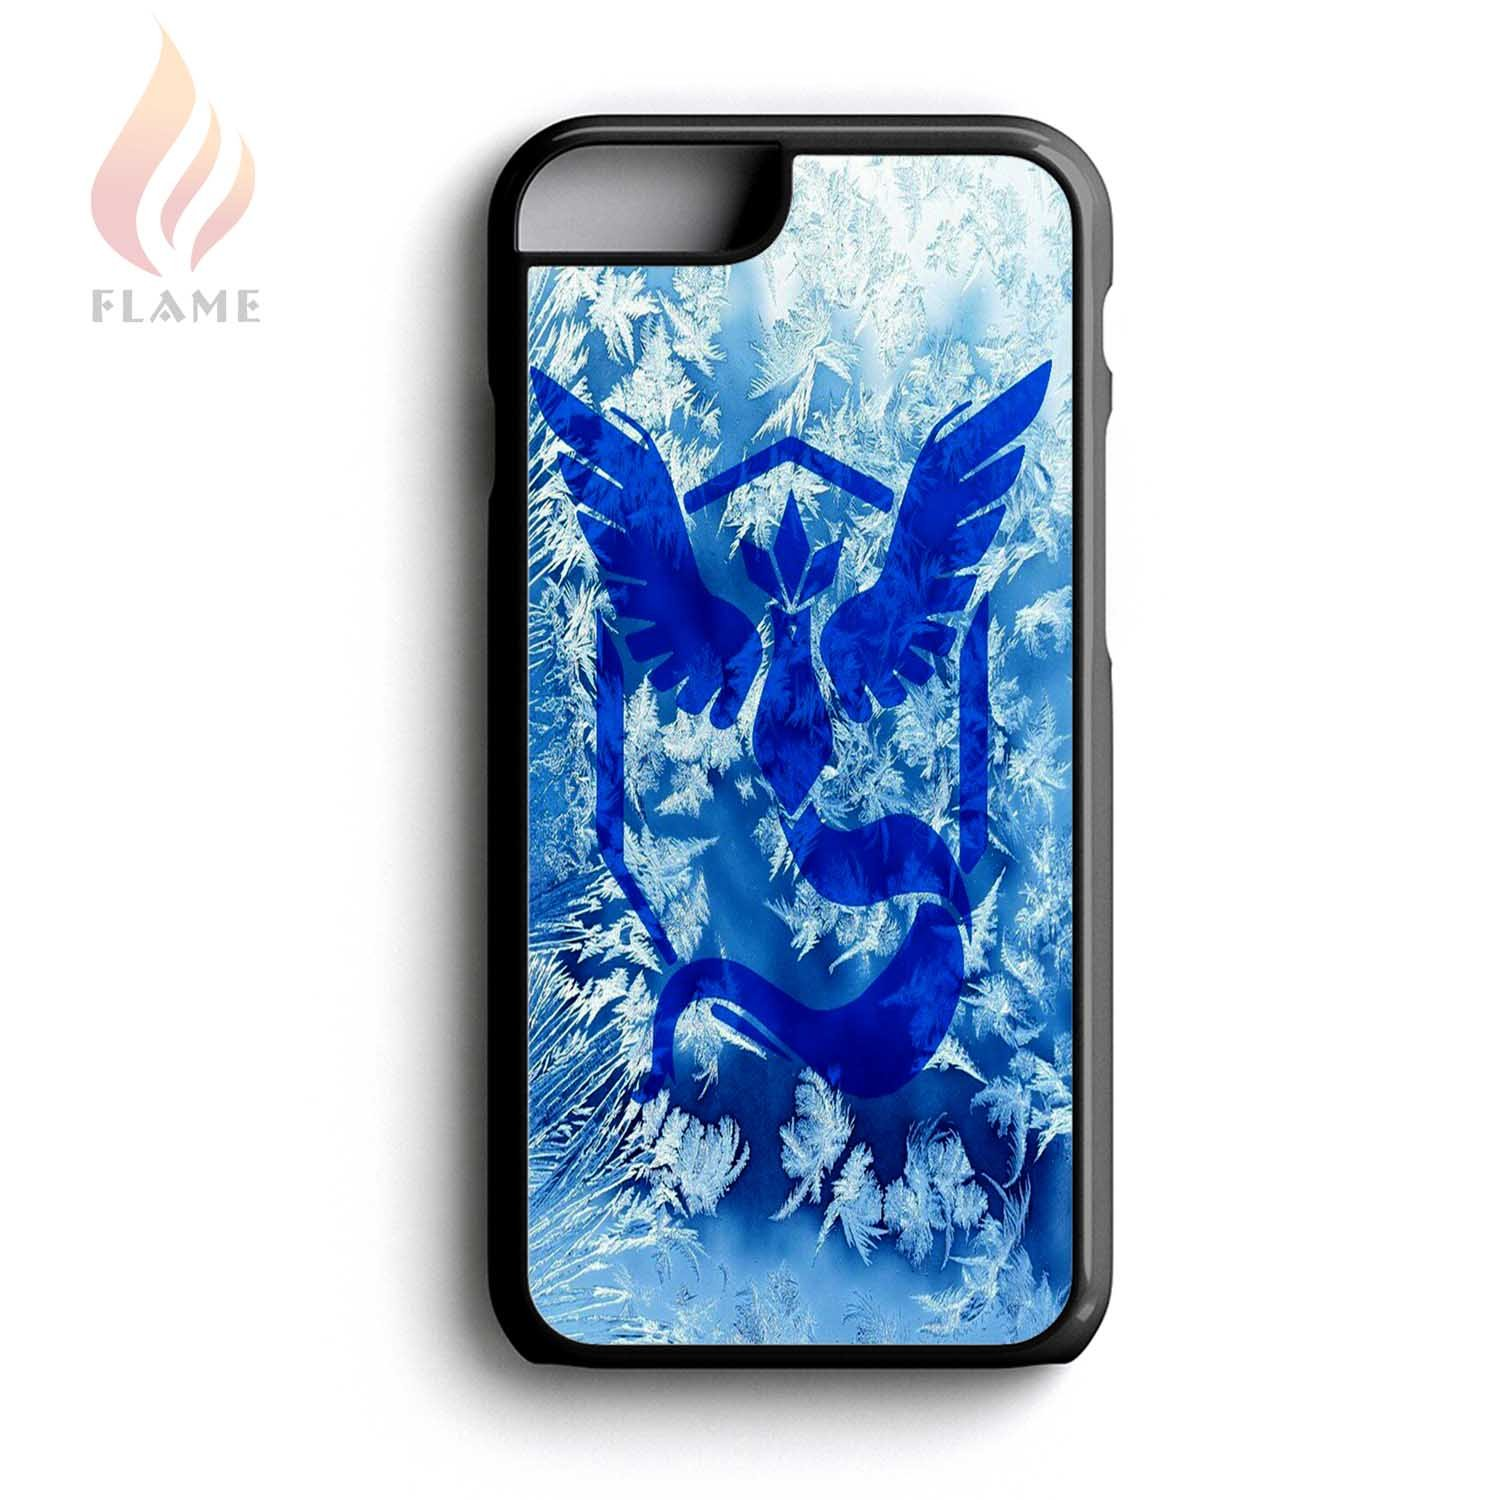 Gebleg Pokemon Go Team Mystic Wallpaper For Iphone 6 Plus Case